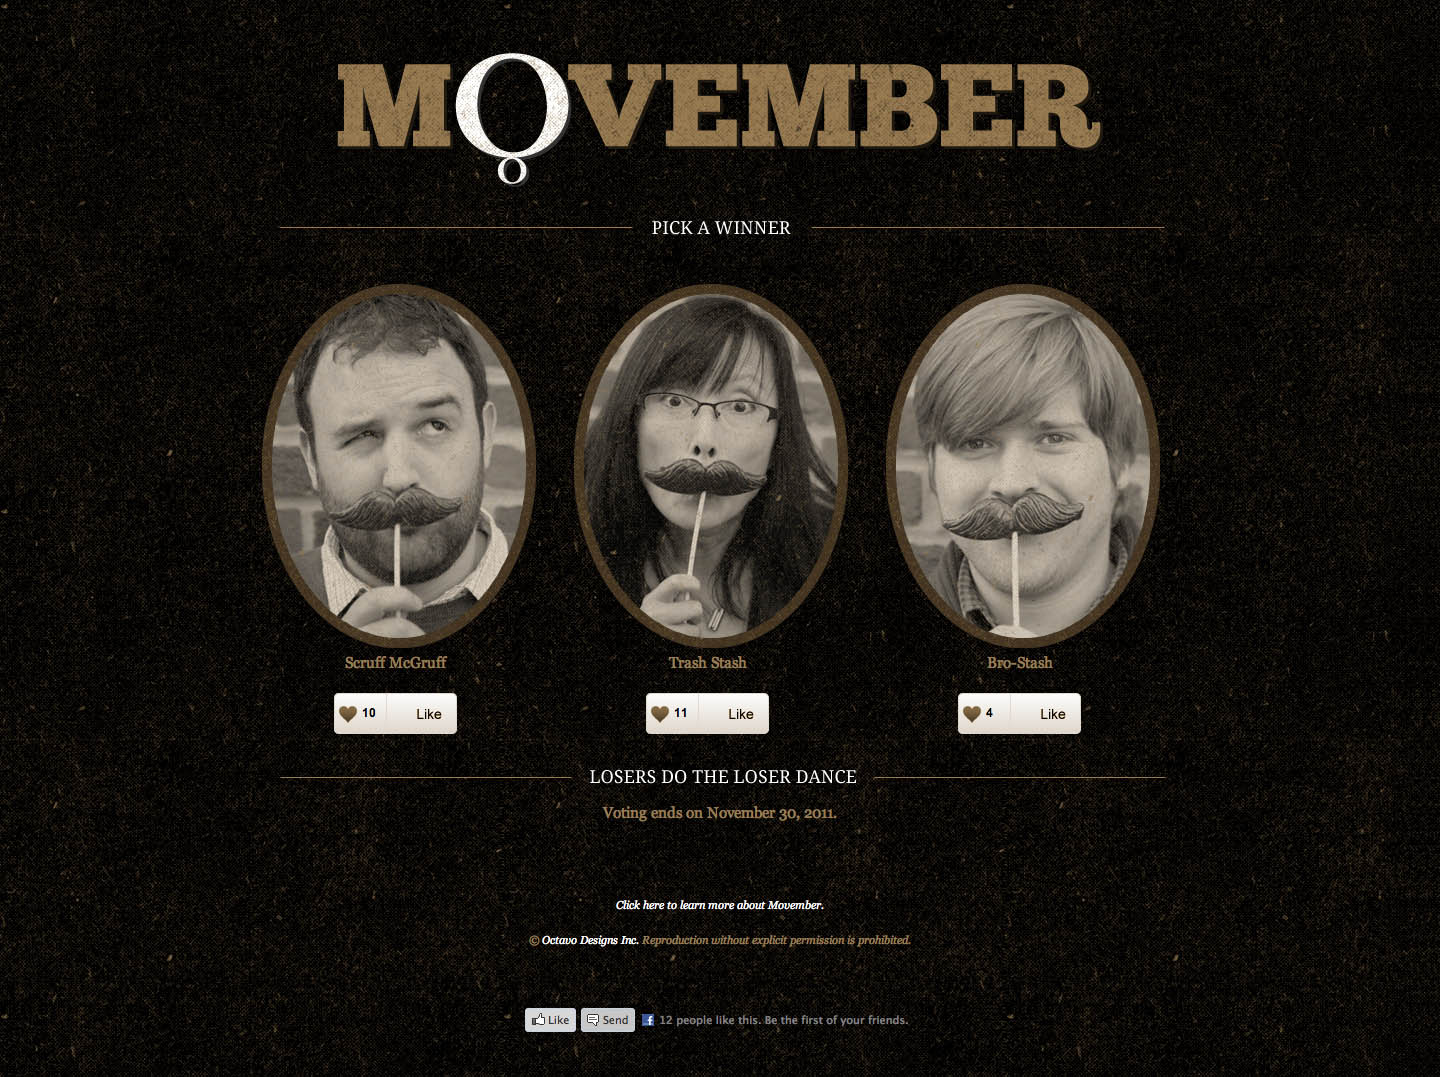 Bro-Stash, Mo-Stash Website Screenshot